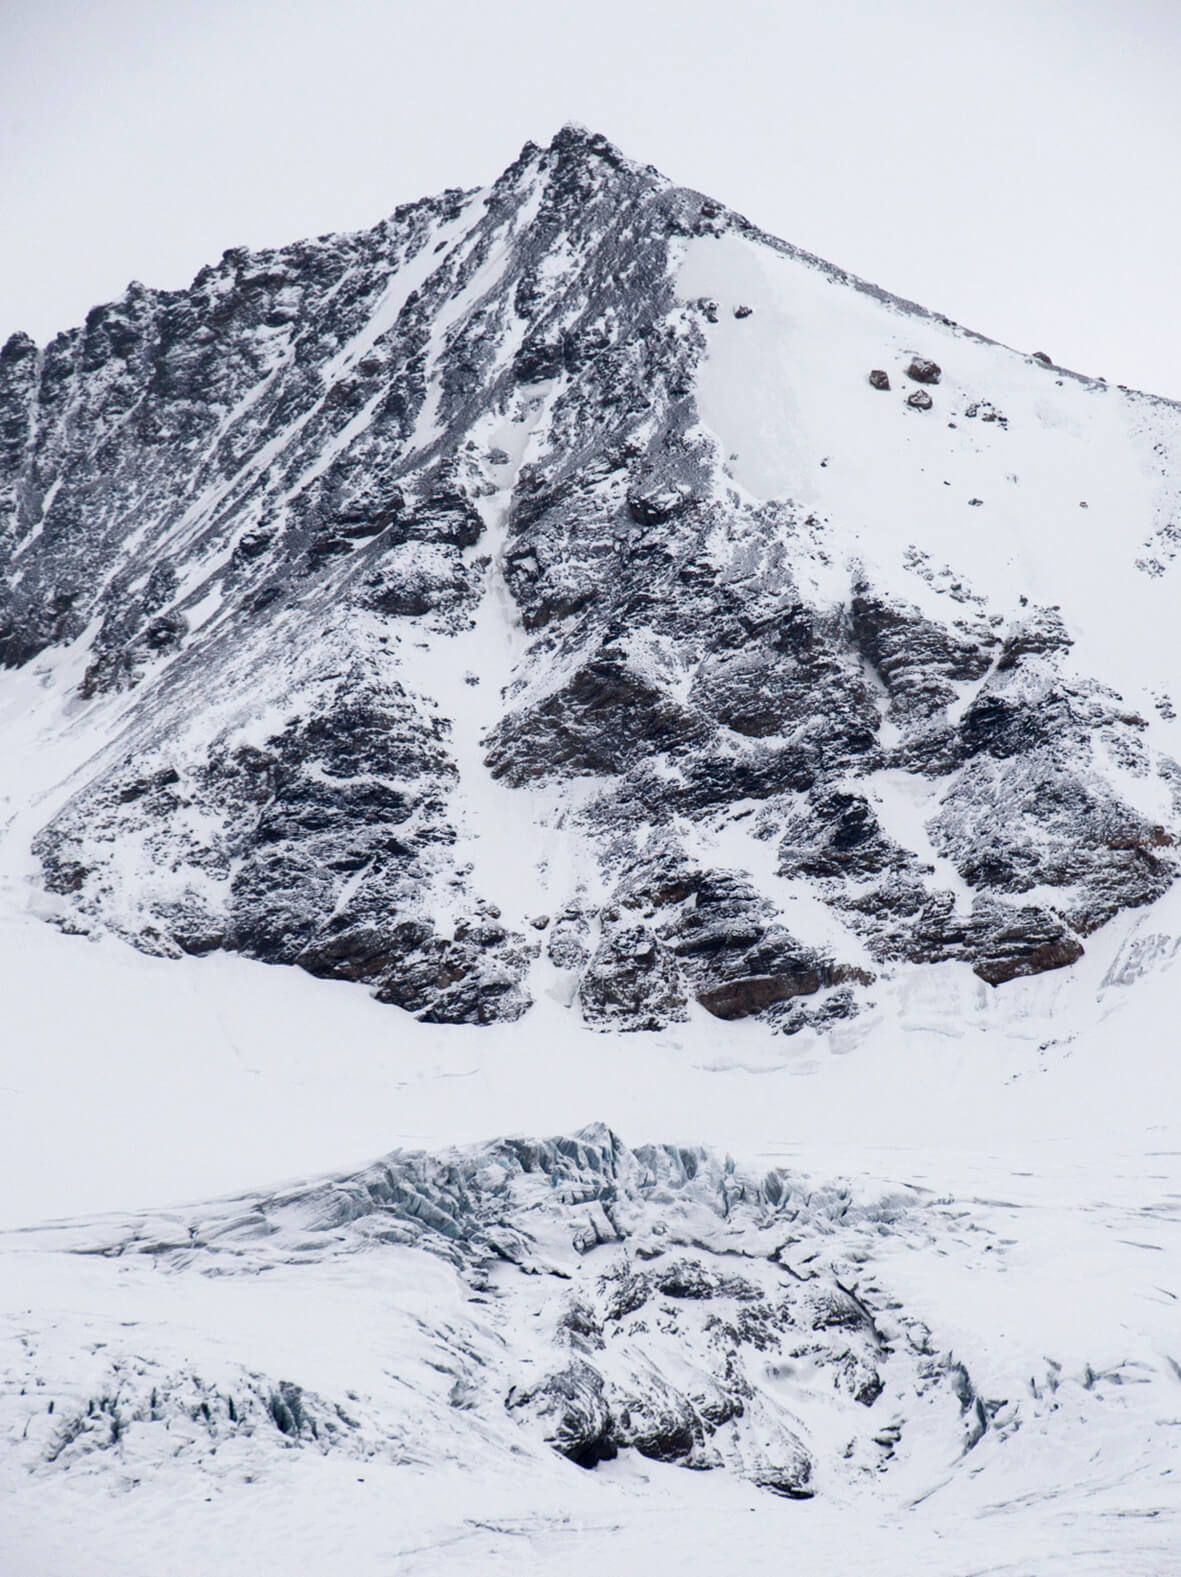 arctic mountain with ice and glacier